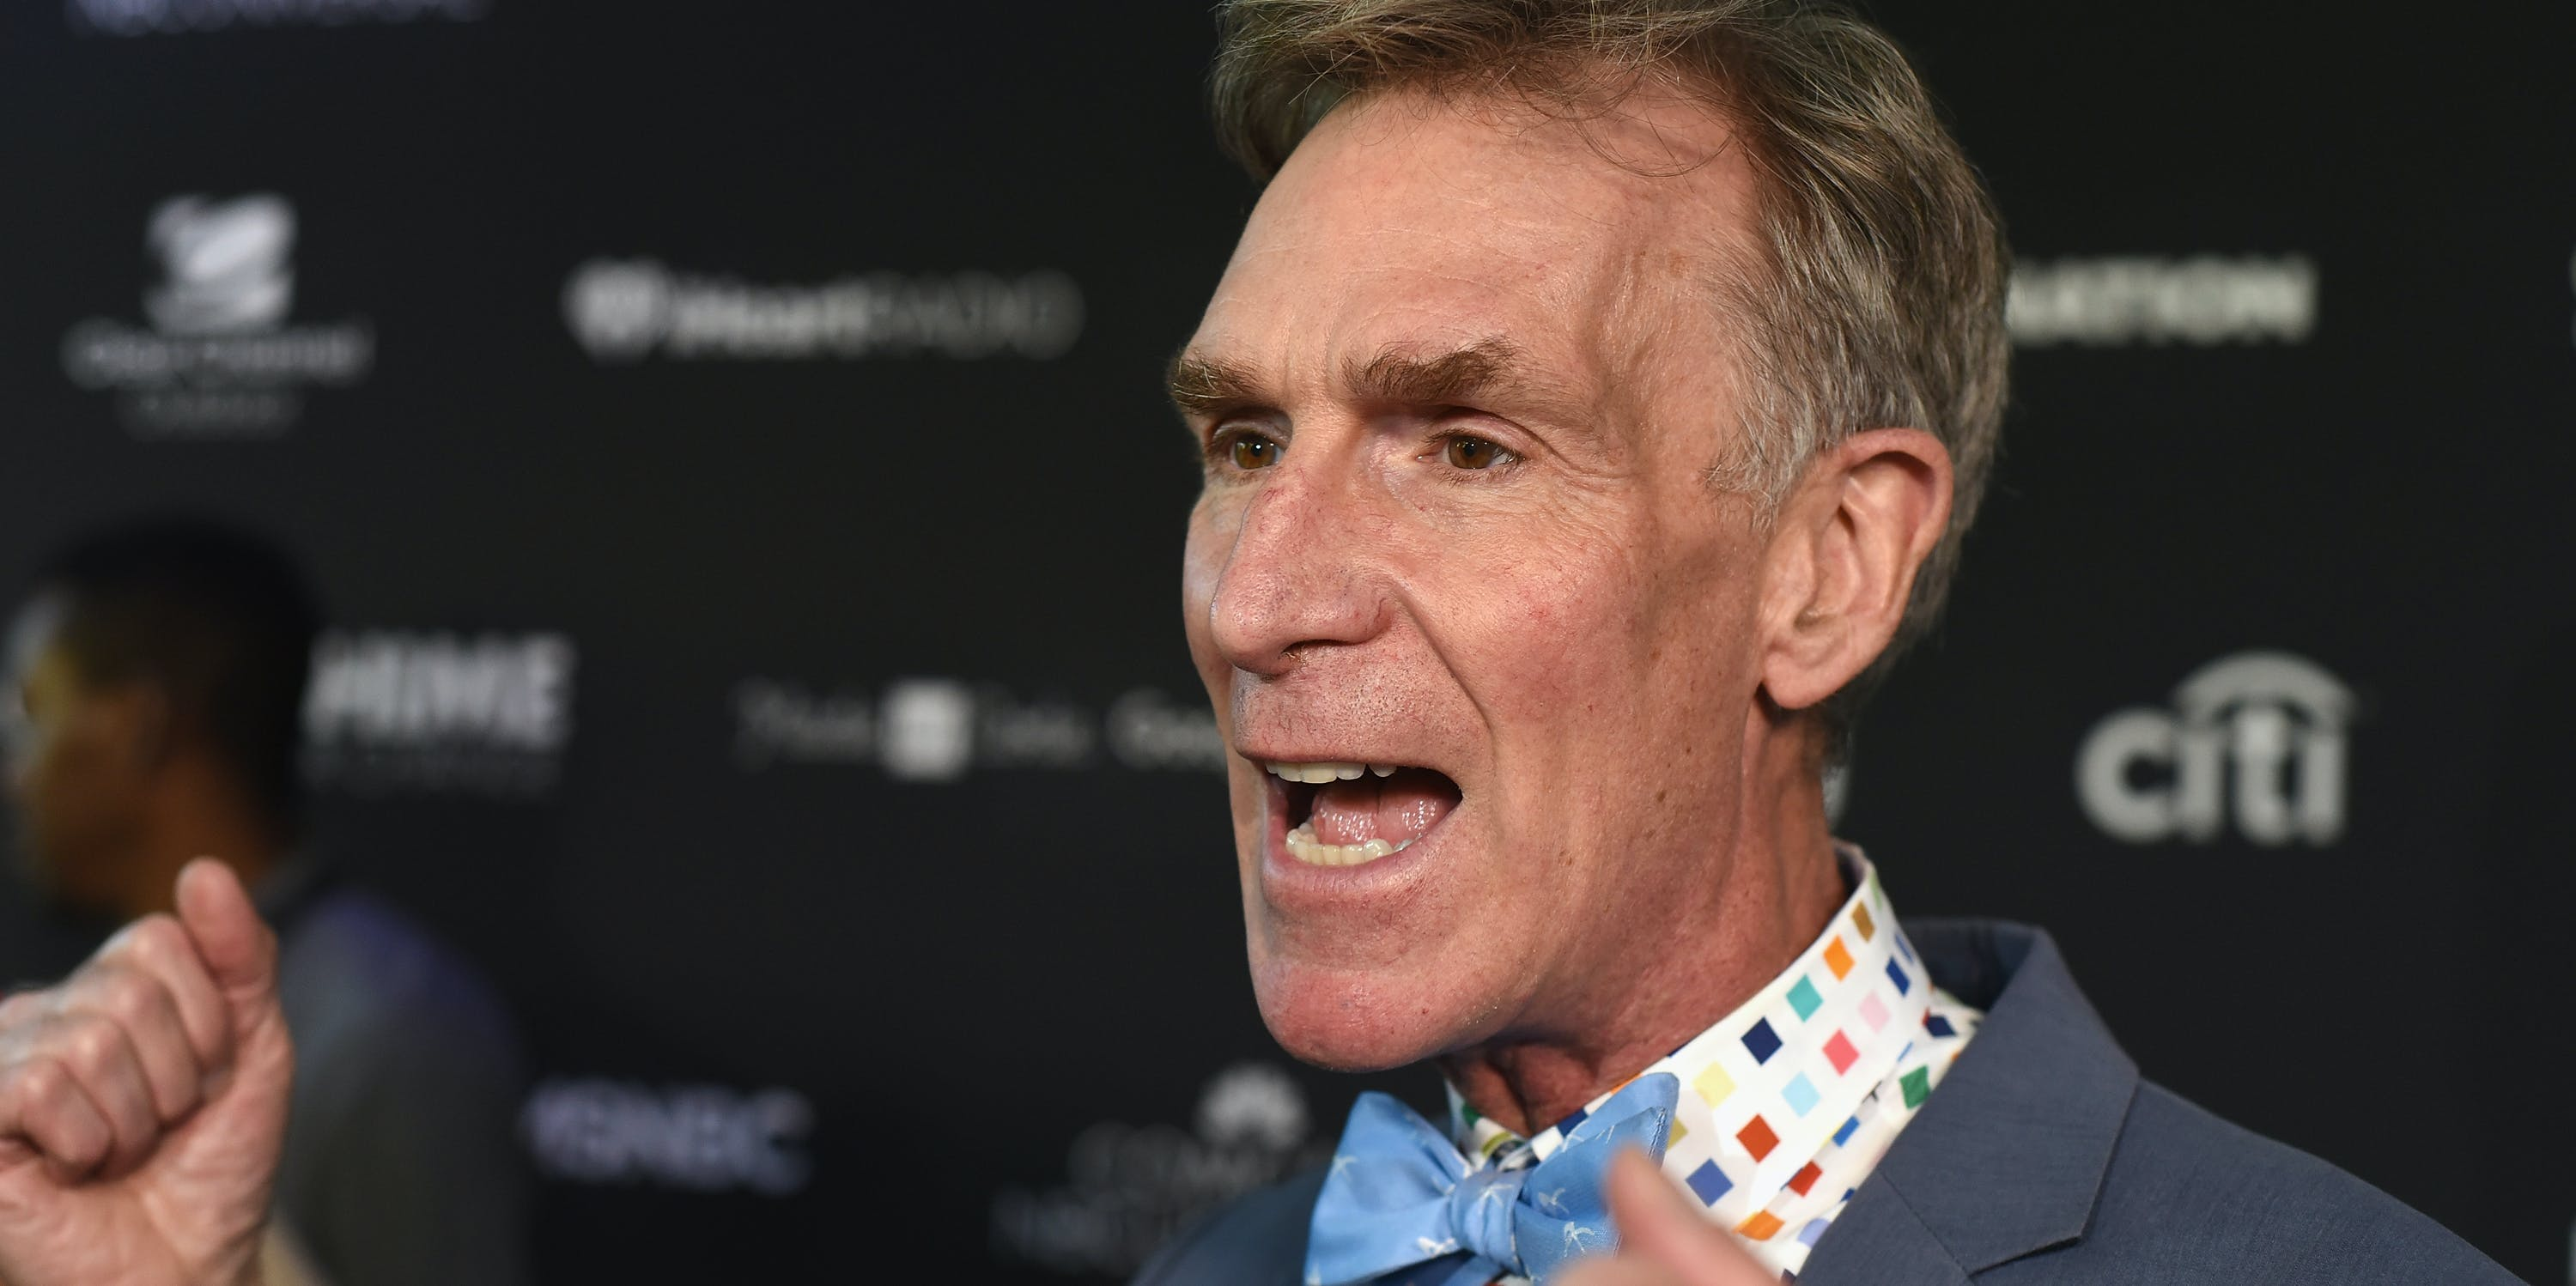 Bill Nye Netflix April 2017